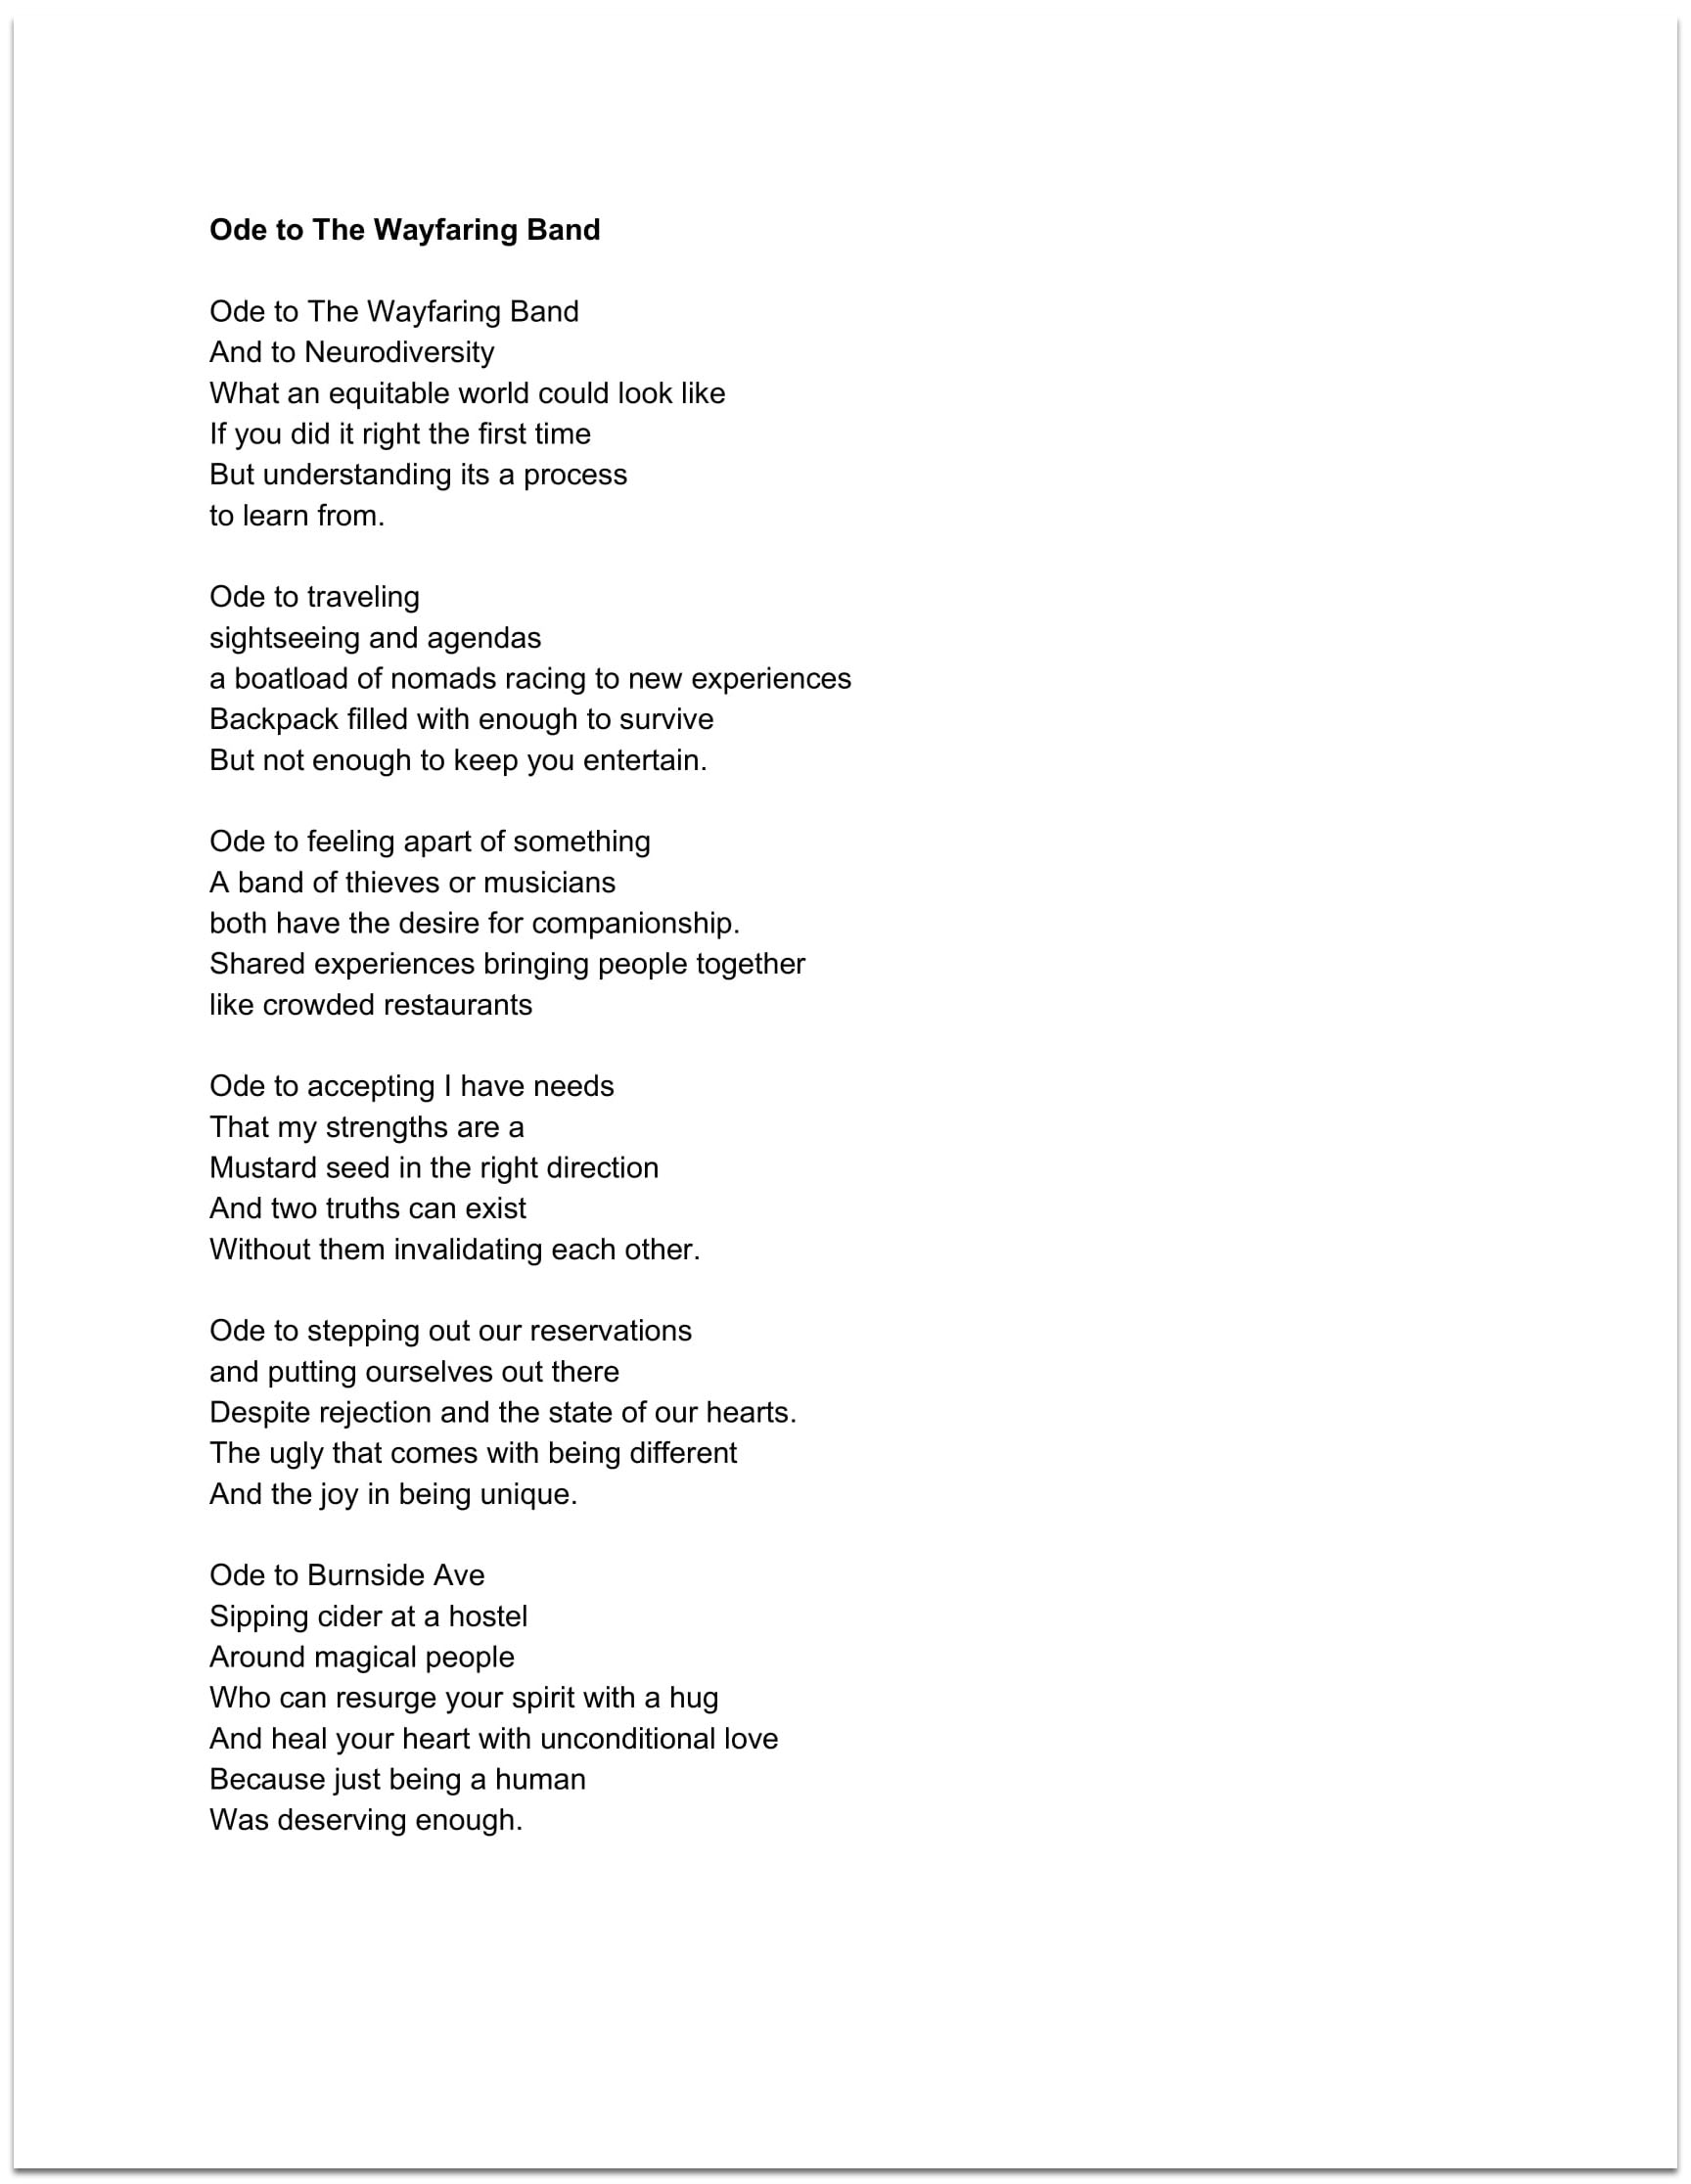 From Burnside with Love (2nd Draft)(1)-14.jpg